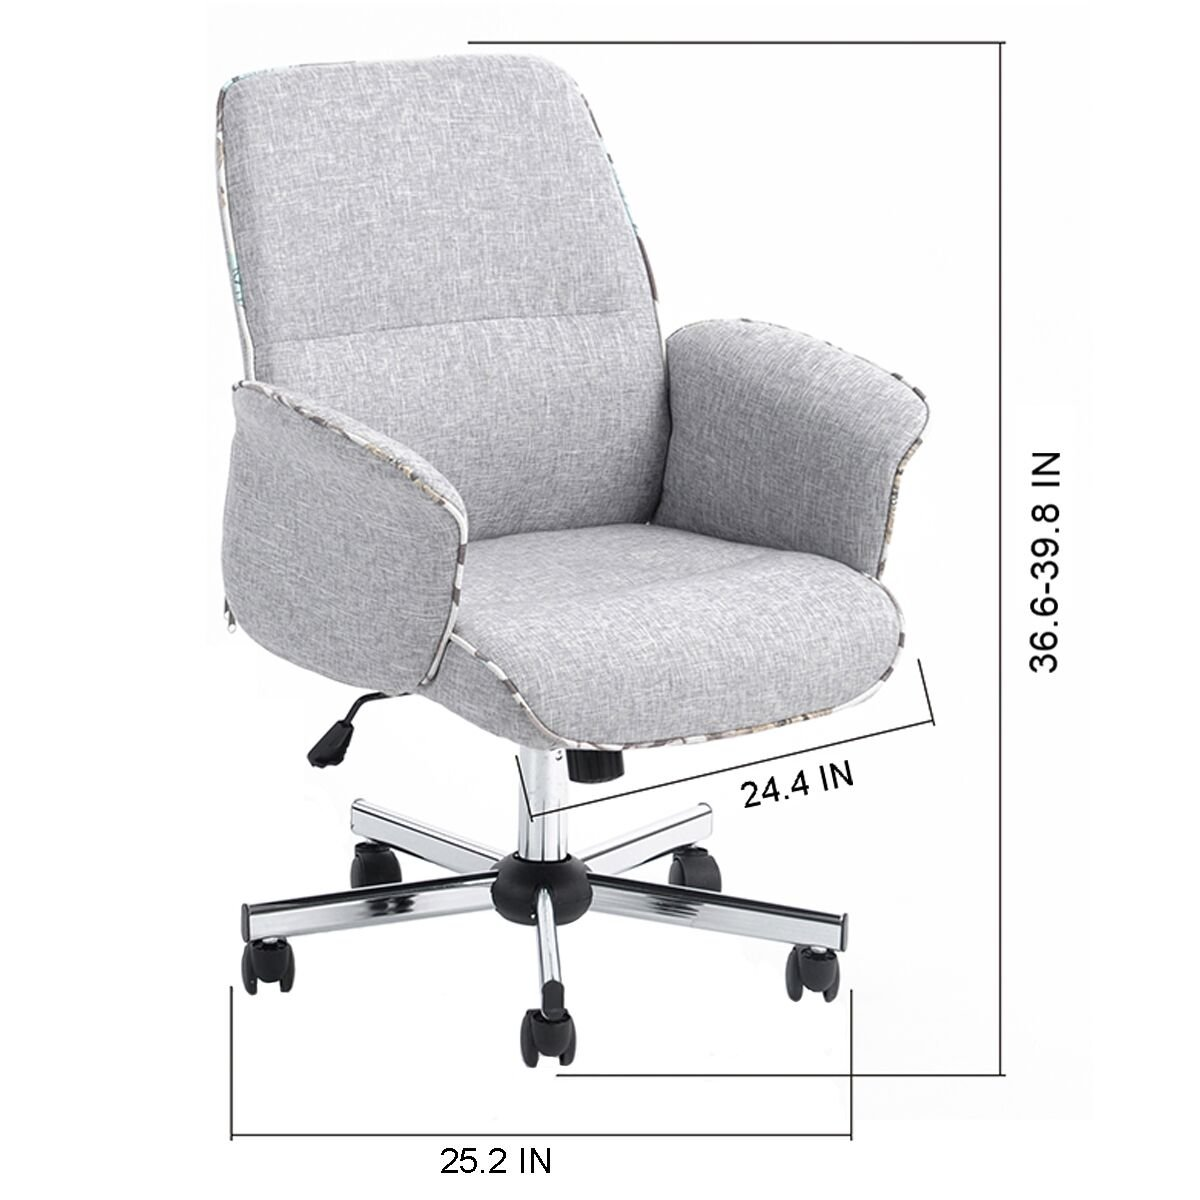 Amazon.com: HOMY CASA Homycasa Leisure Grey Fabric Home Office Chair Height  Adjustable Chair: Kitchen & Dining